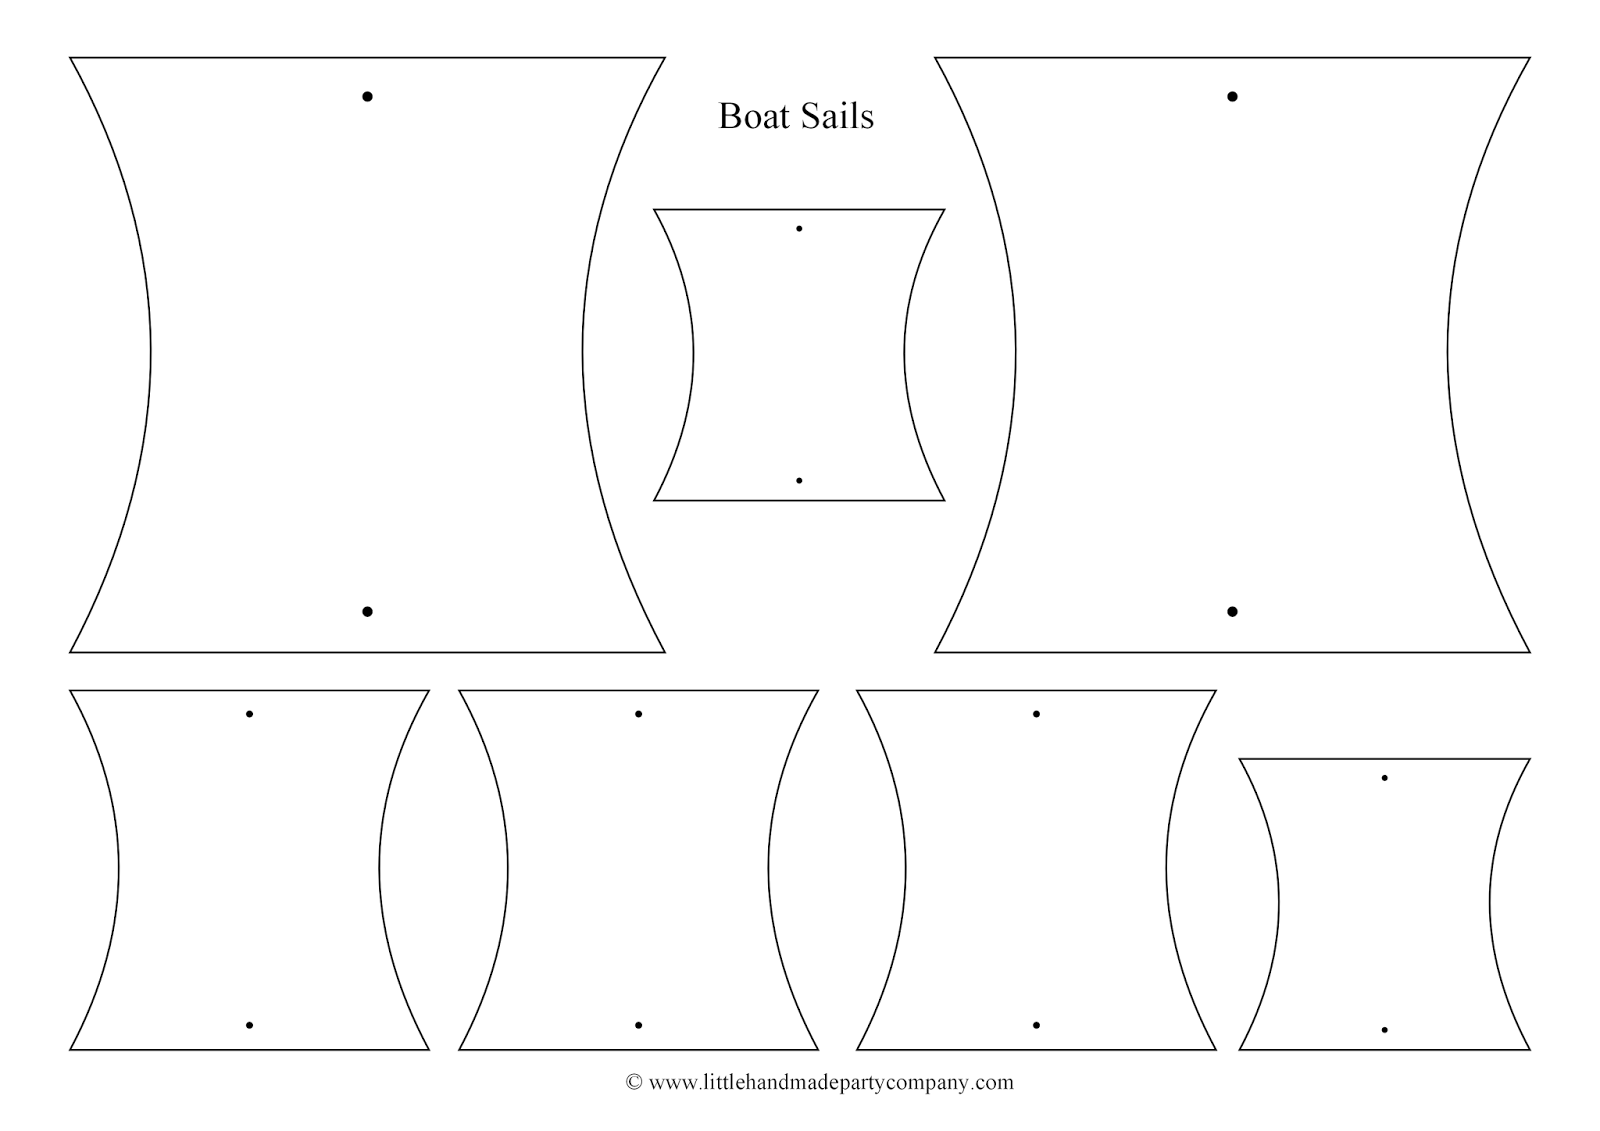 Little handmade party company printables for Pirate ship sails template